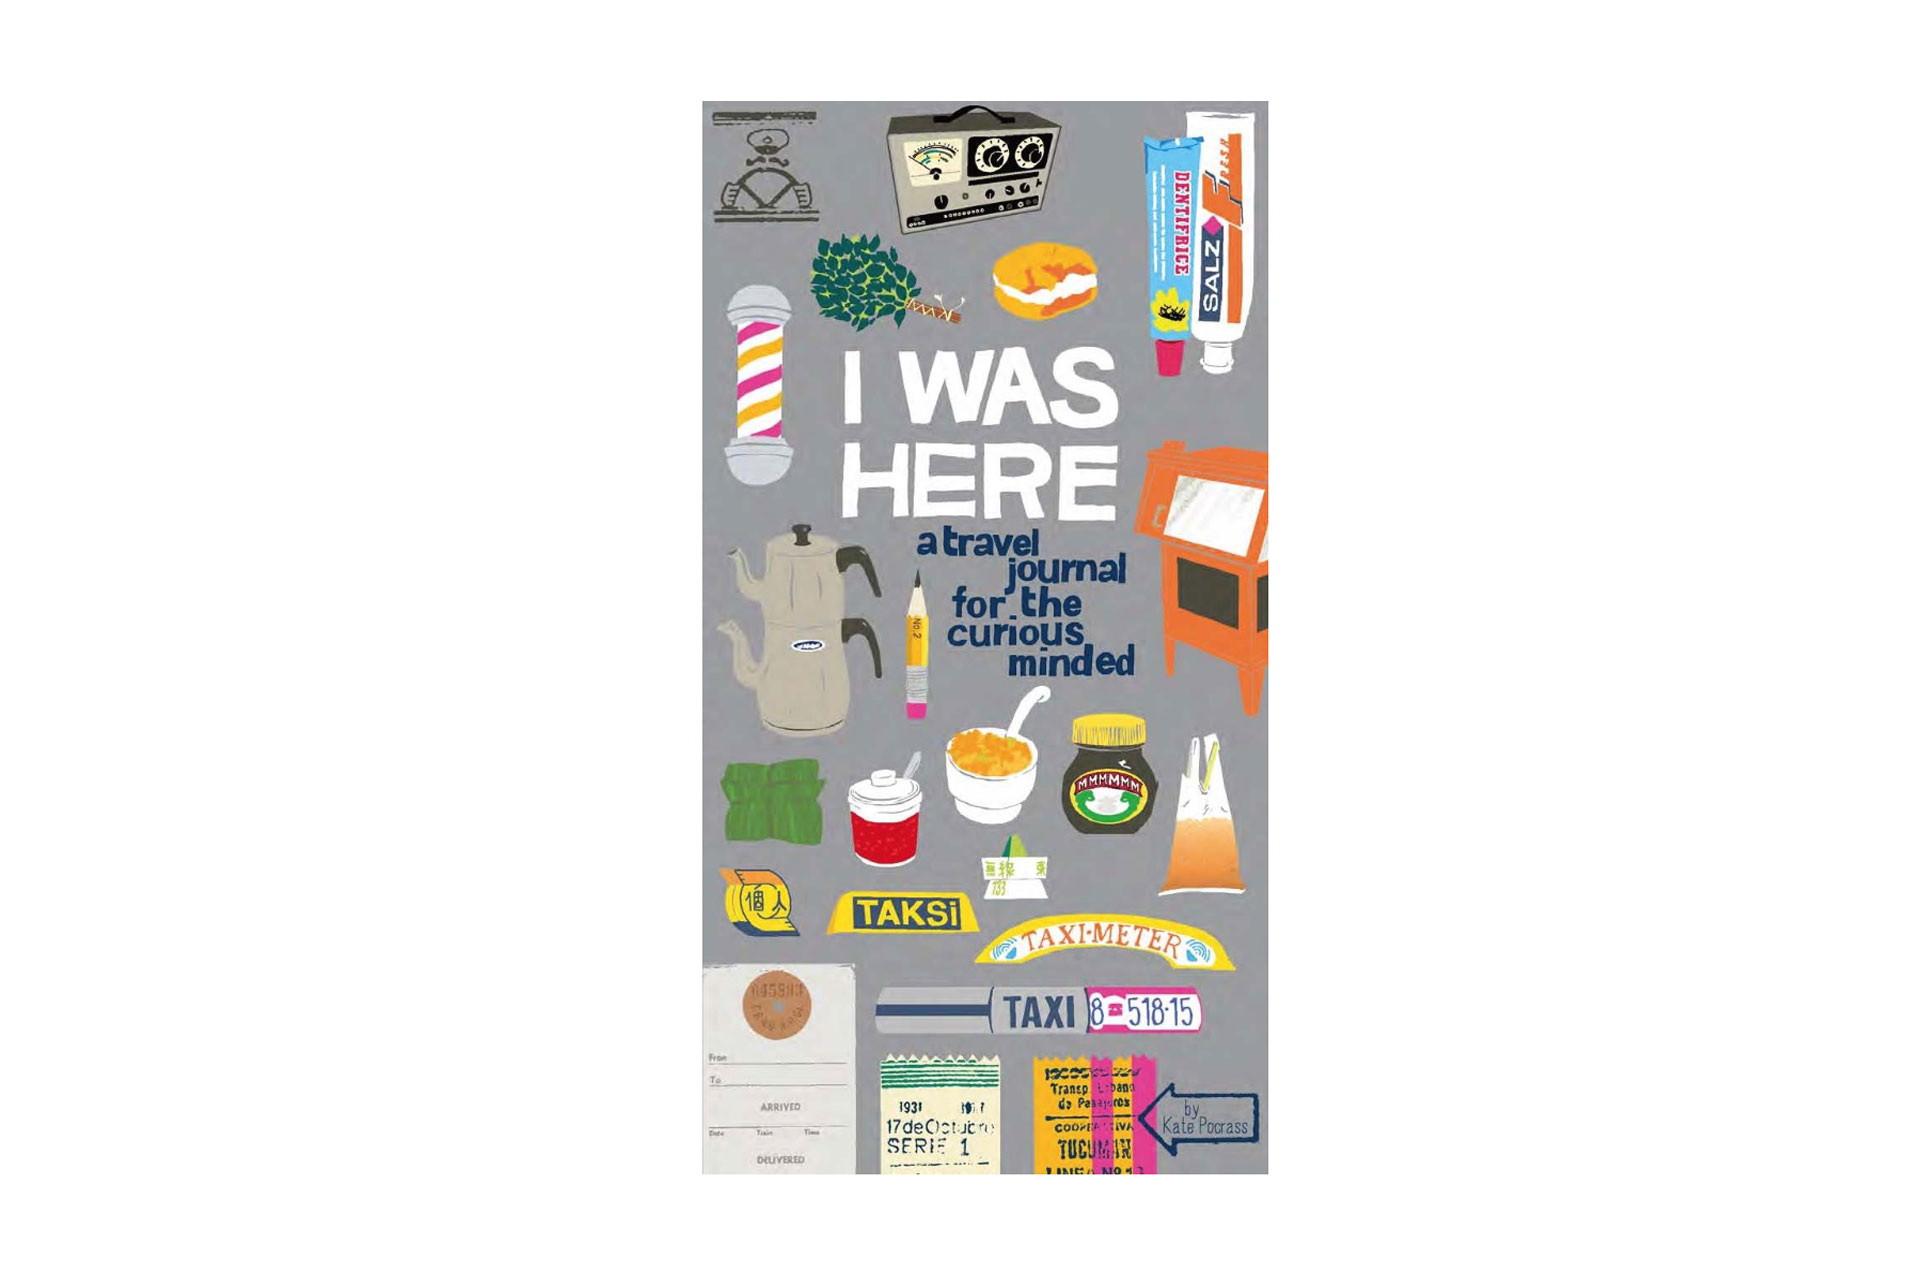 I Was Here: A Travel Journal for the Curious Minded Book; Courtesy of Amazon